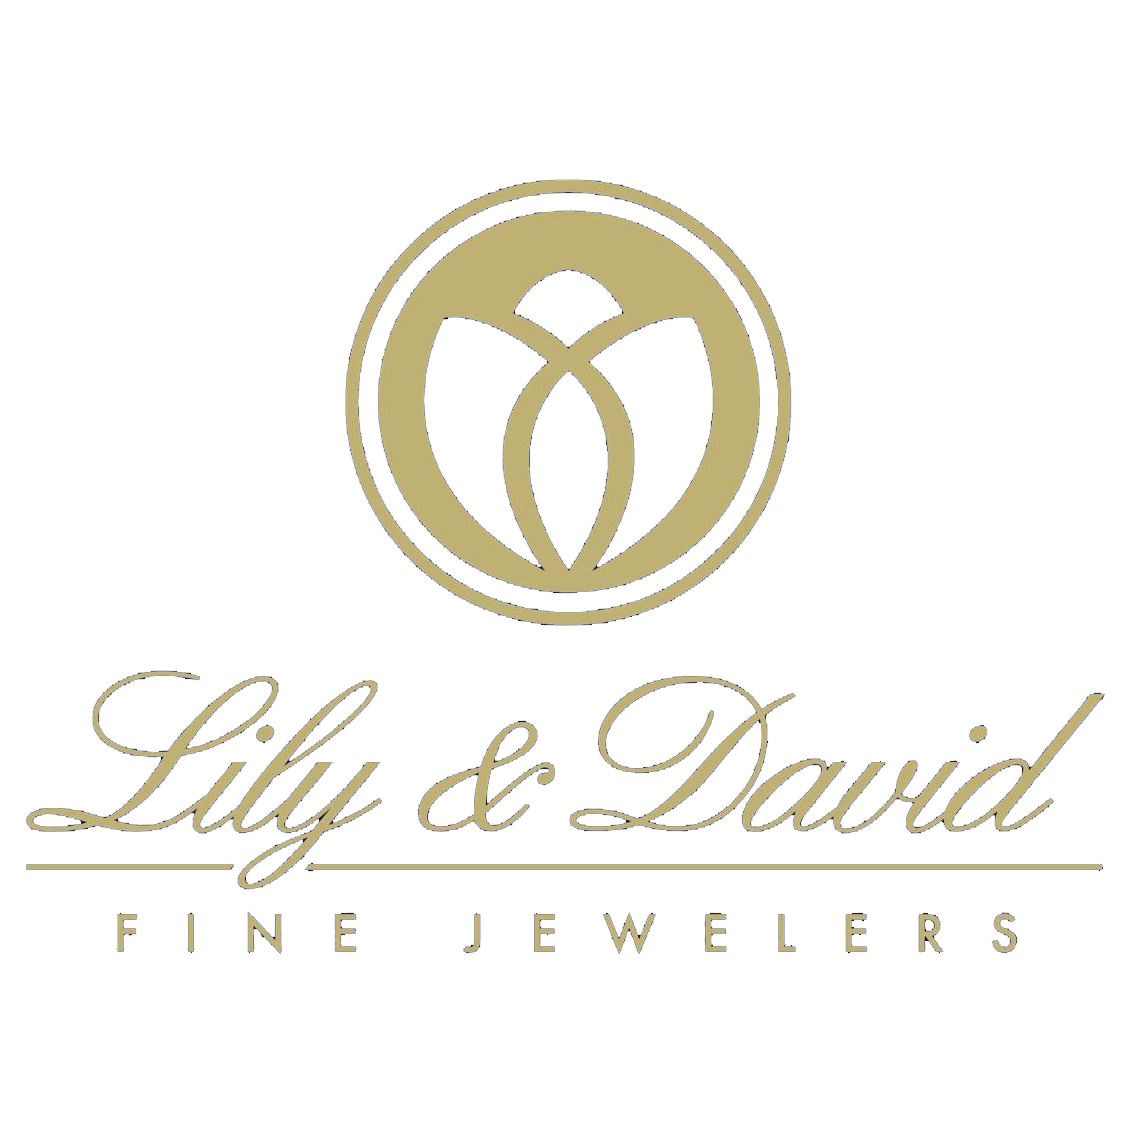 Lily david fine jewelers in saratoga springs ny 12866 for David s fine jewelry